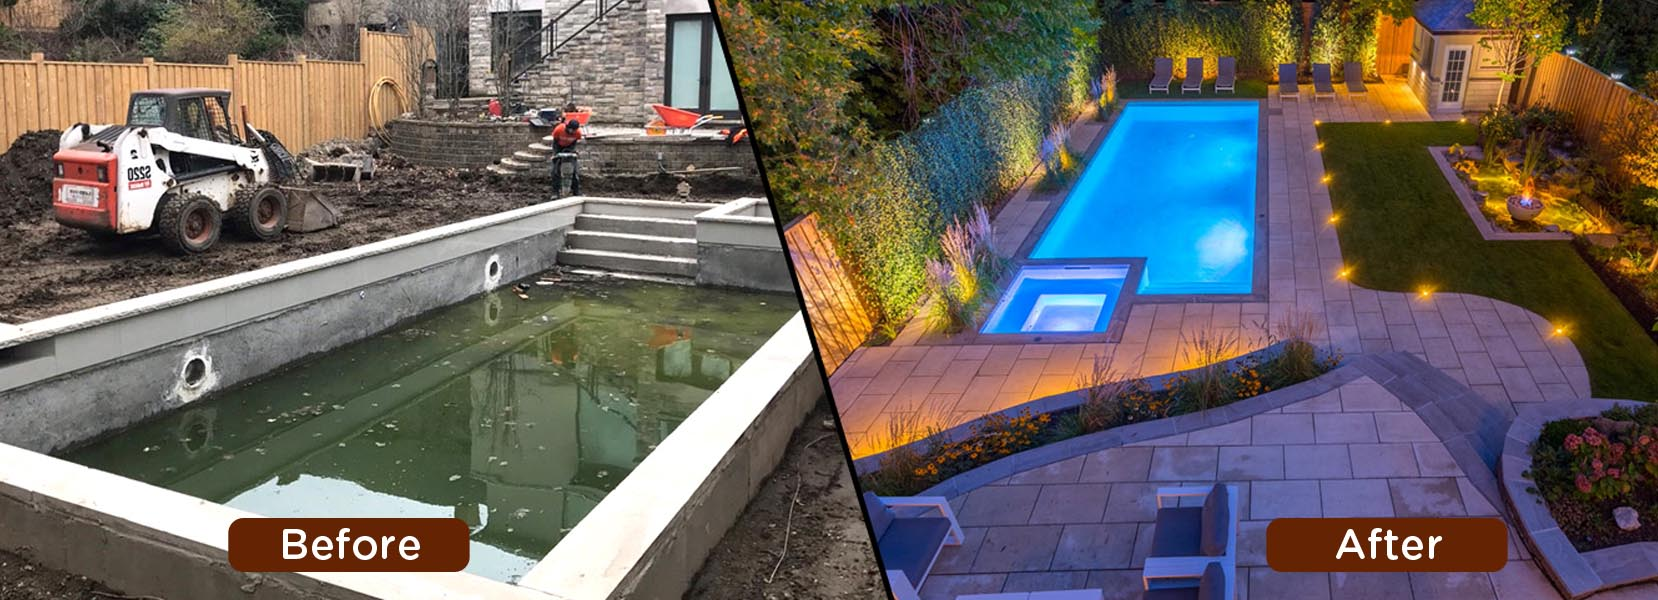 Swimming Pool Before and after Construction